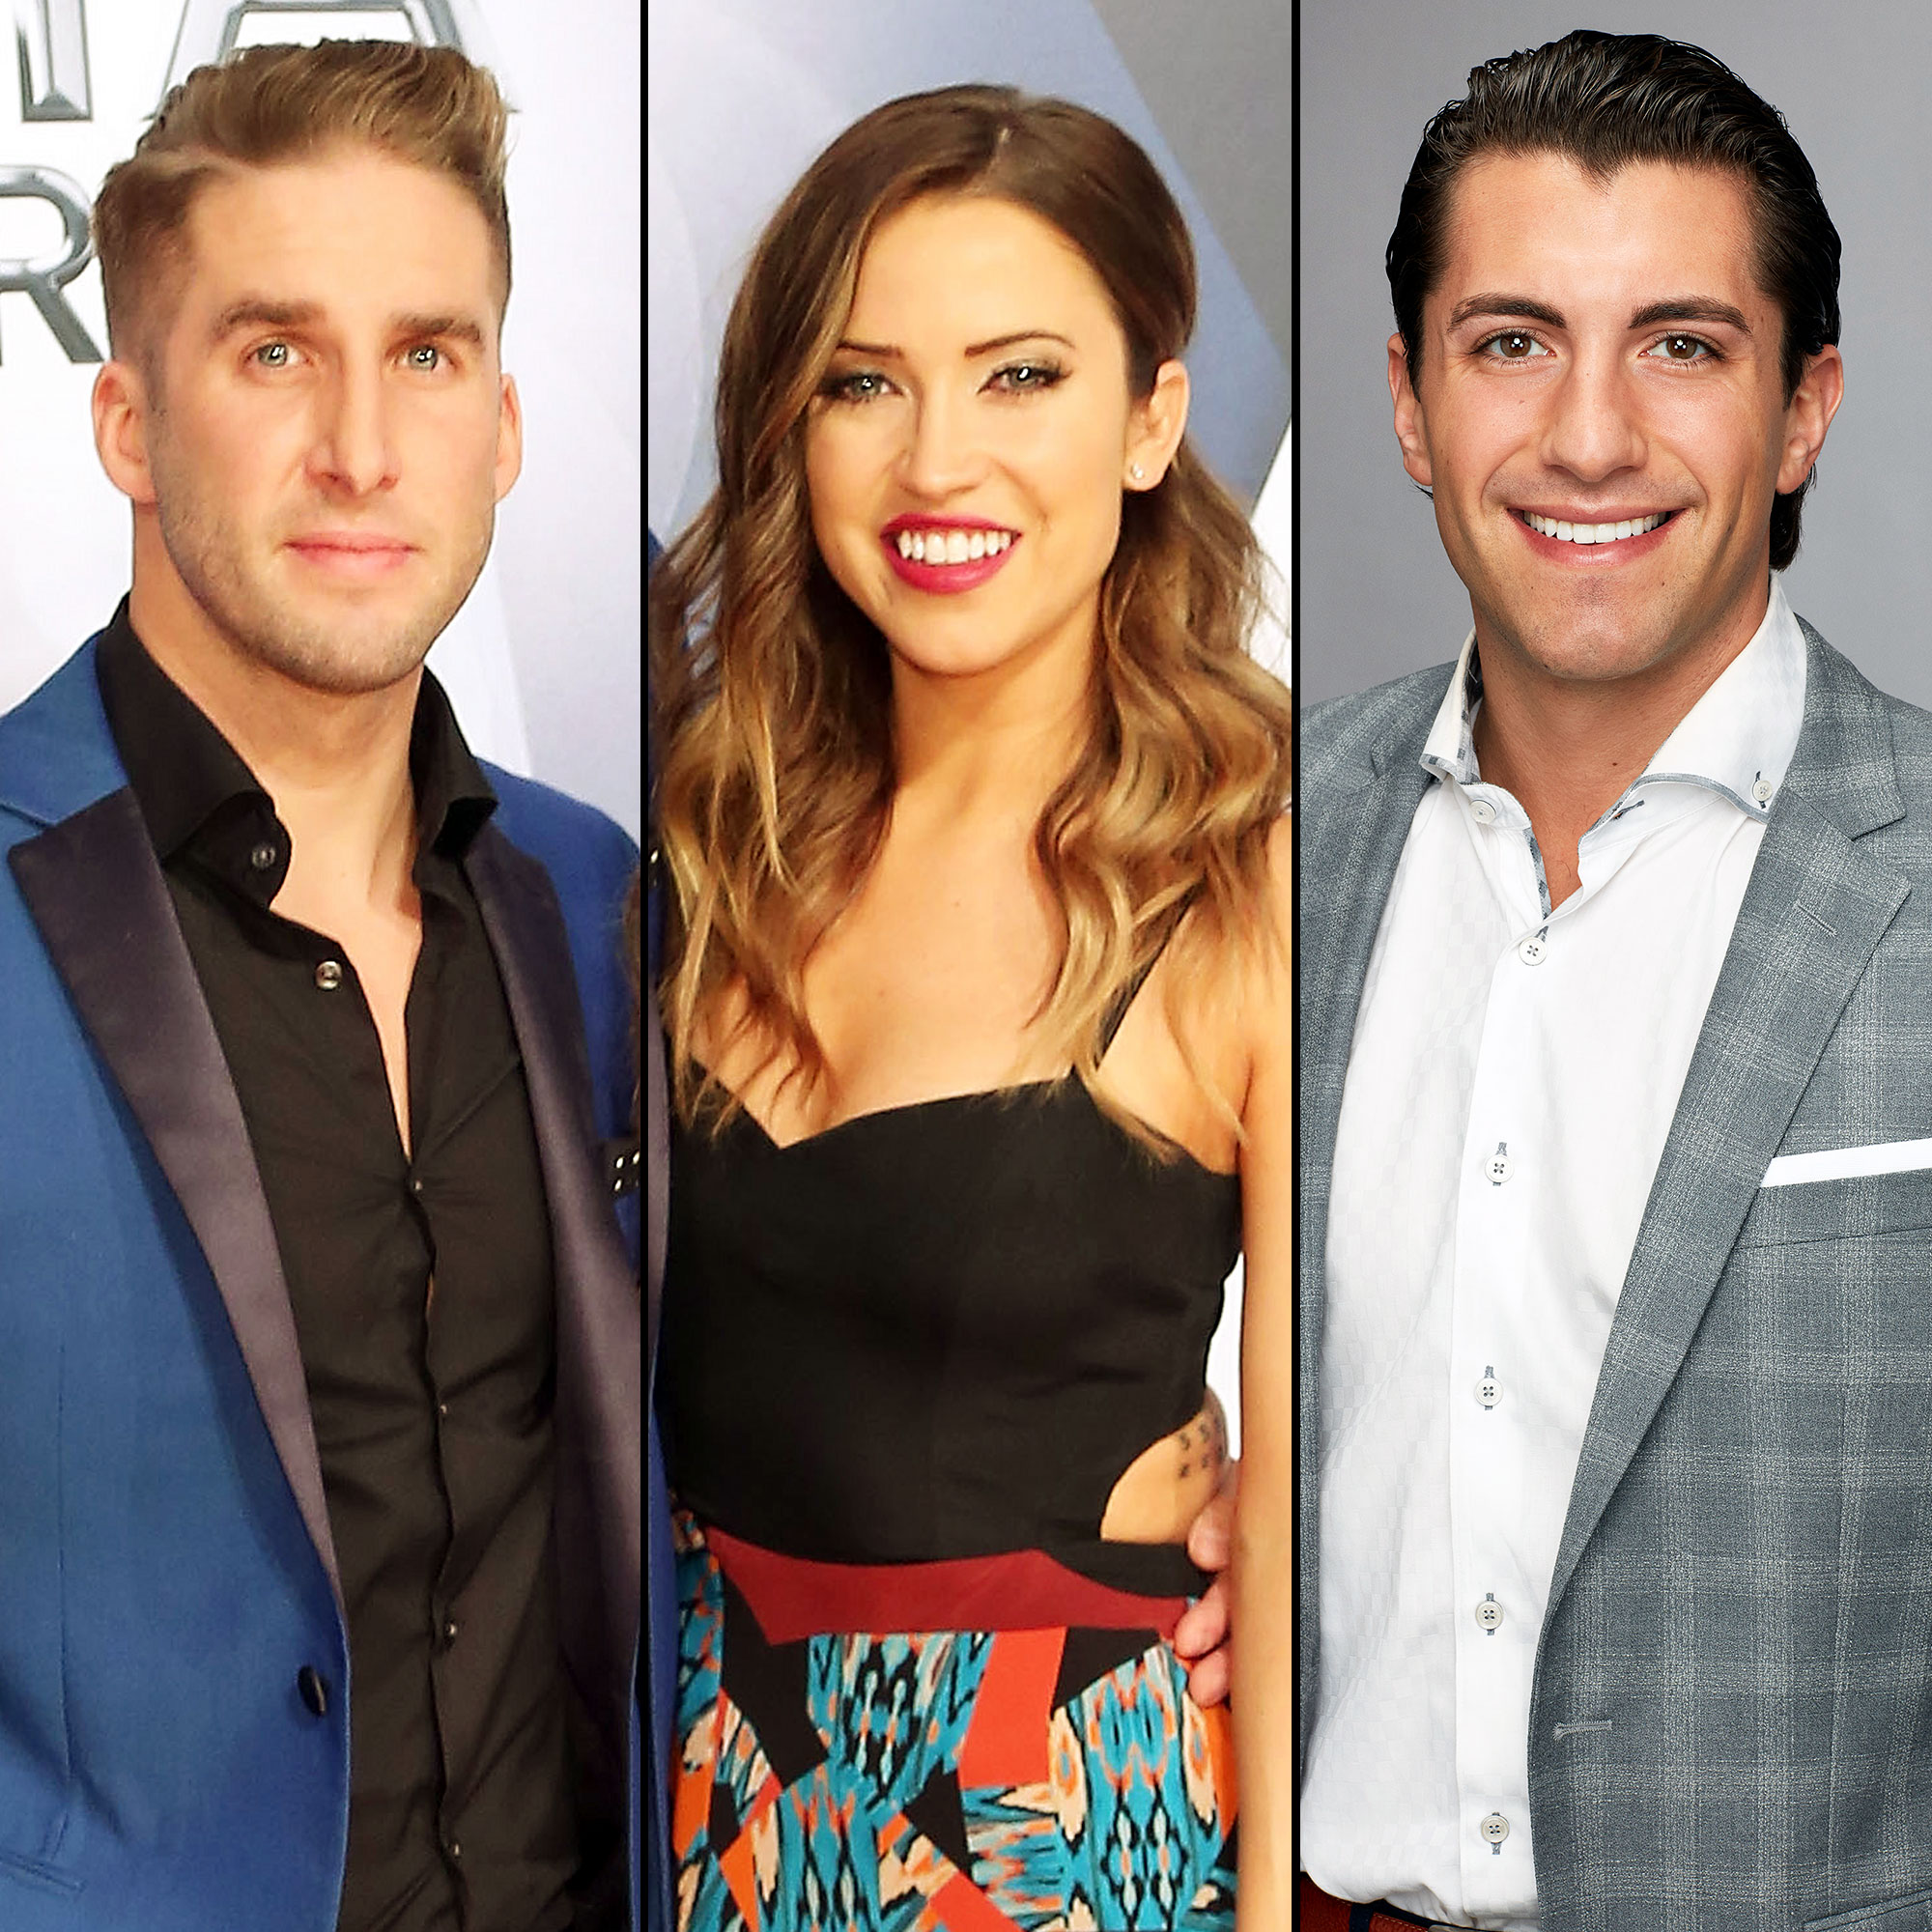 f9e9666d90138 Shawn Booth Breaks His Silence on Ex Kaitlyn Bristowe s Romance With Jason  Tartick  It  Makes Me Question Everything